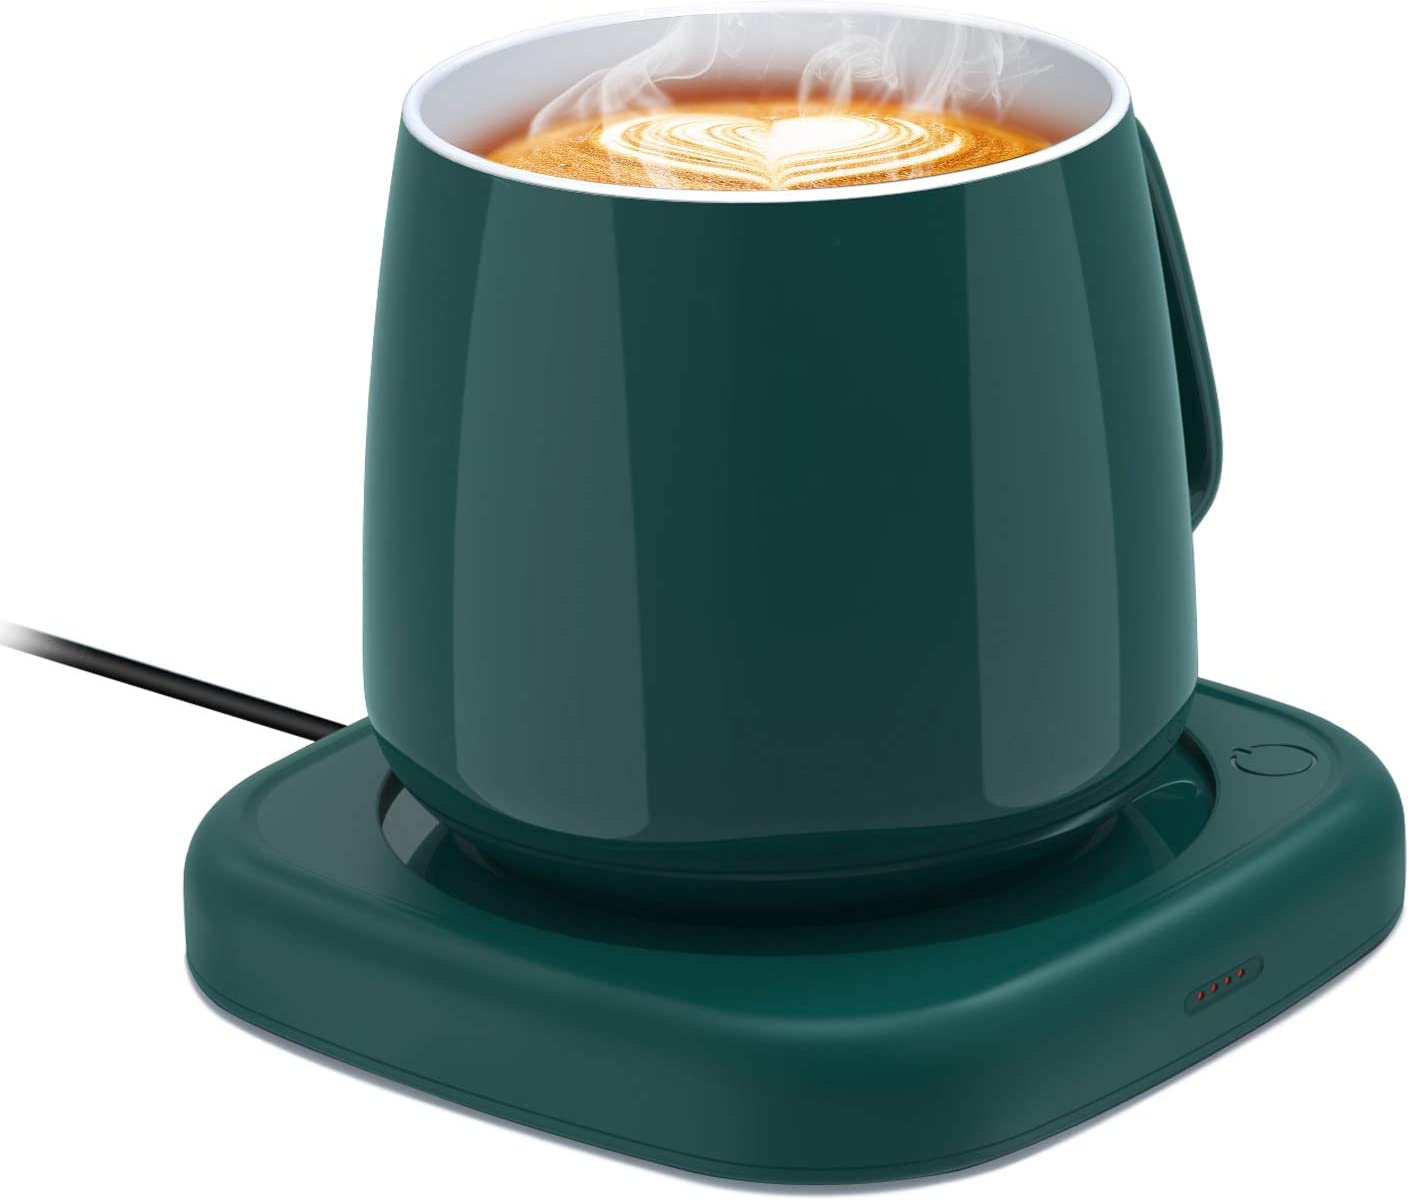 Coffee Mug Warmer for Desk, Coffee Cup Warmer with Auto Shut Off for Home Office, Smart Electric Warmer Plate for Warming Coffee, Milk and Tea (No Cup)